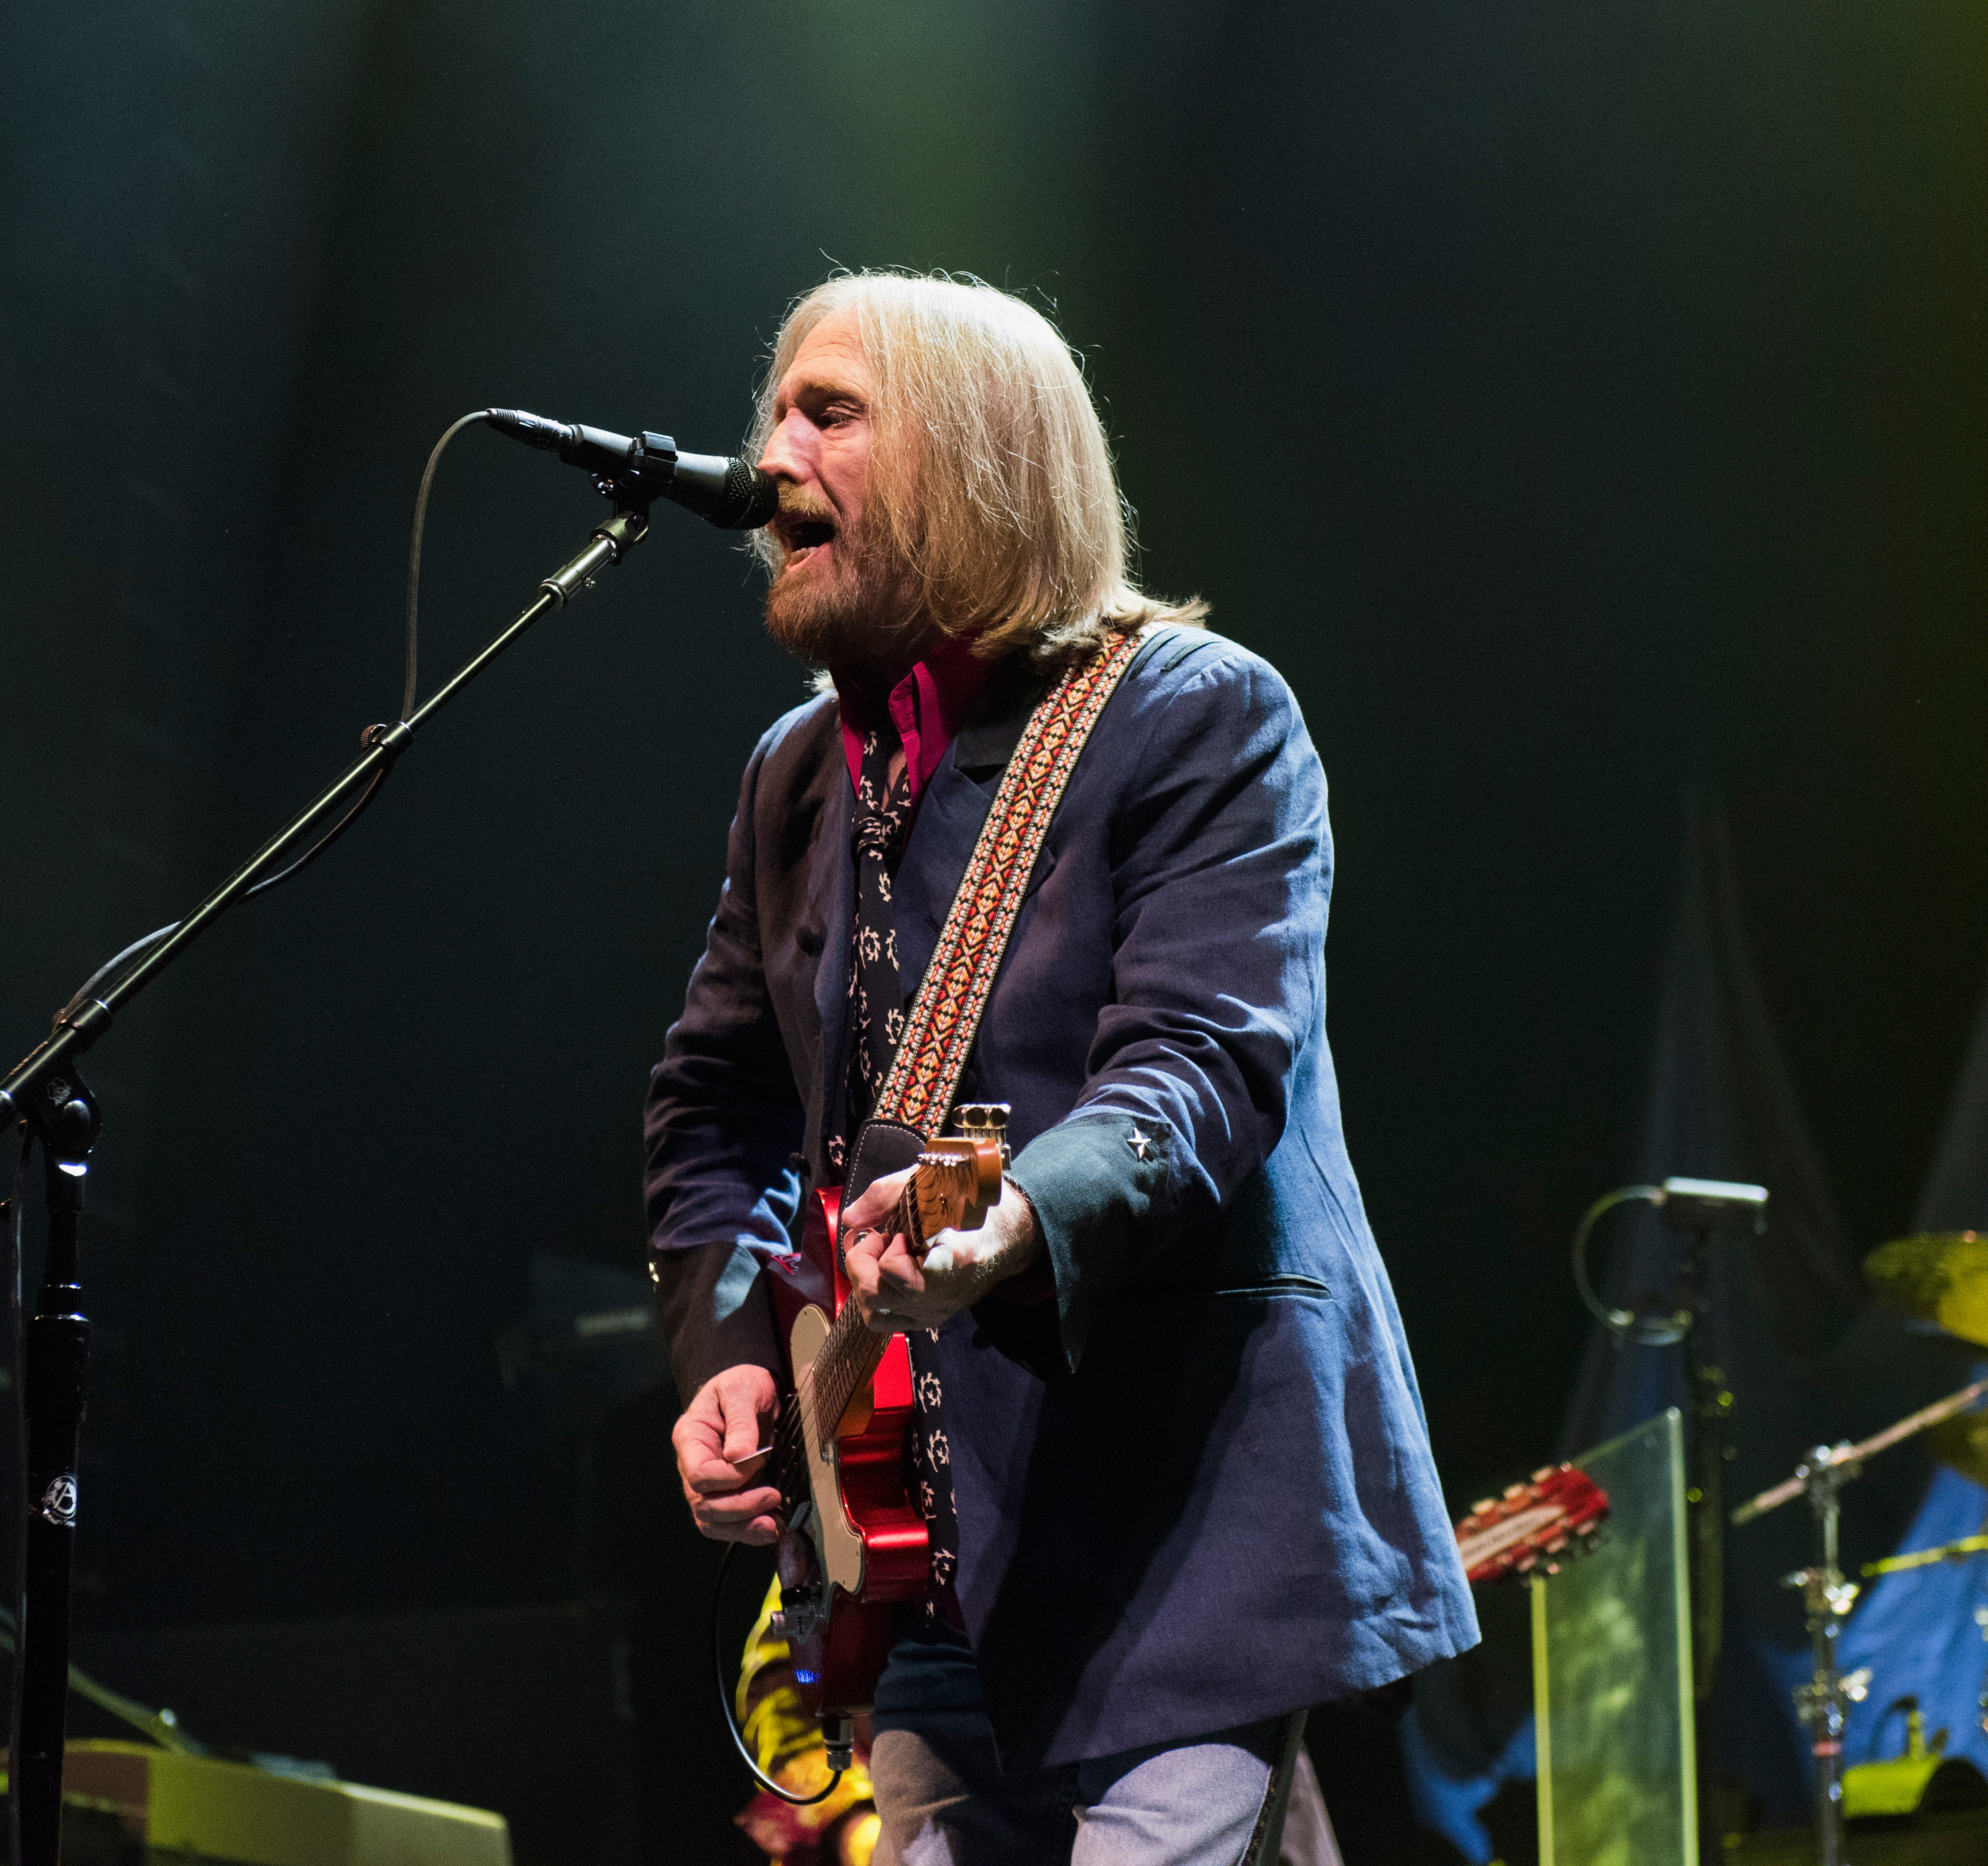 Tom Petty of Tom Petty And The Heartbreakers performs onstage at The Forum on October 10, 2014 in Inglewood, California.